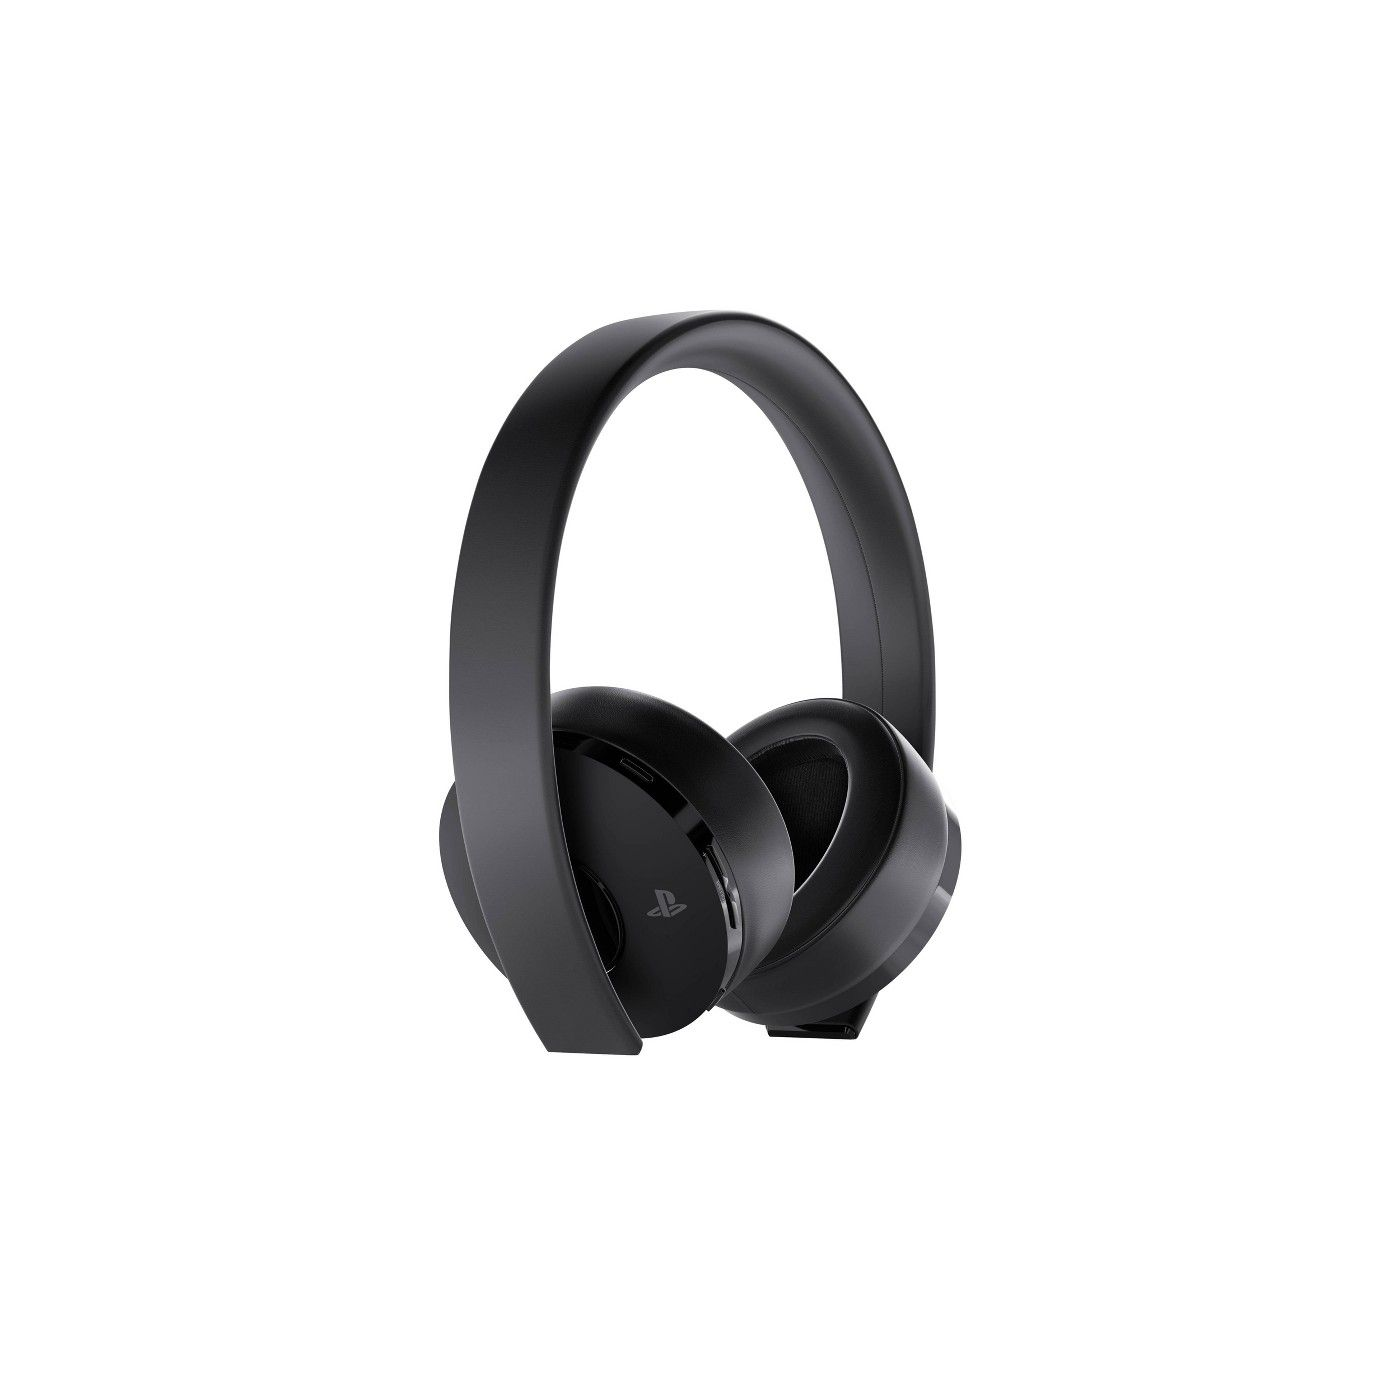 Playstation Gold Wireless Gaming Headset Fortnite Bundle Black Affiliate Wireless Ad Gaming Wireless Gaming Headset Playstation Gold Gaming Headset